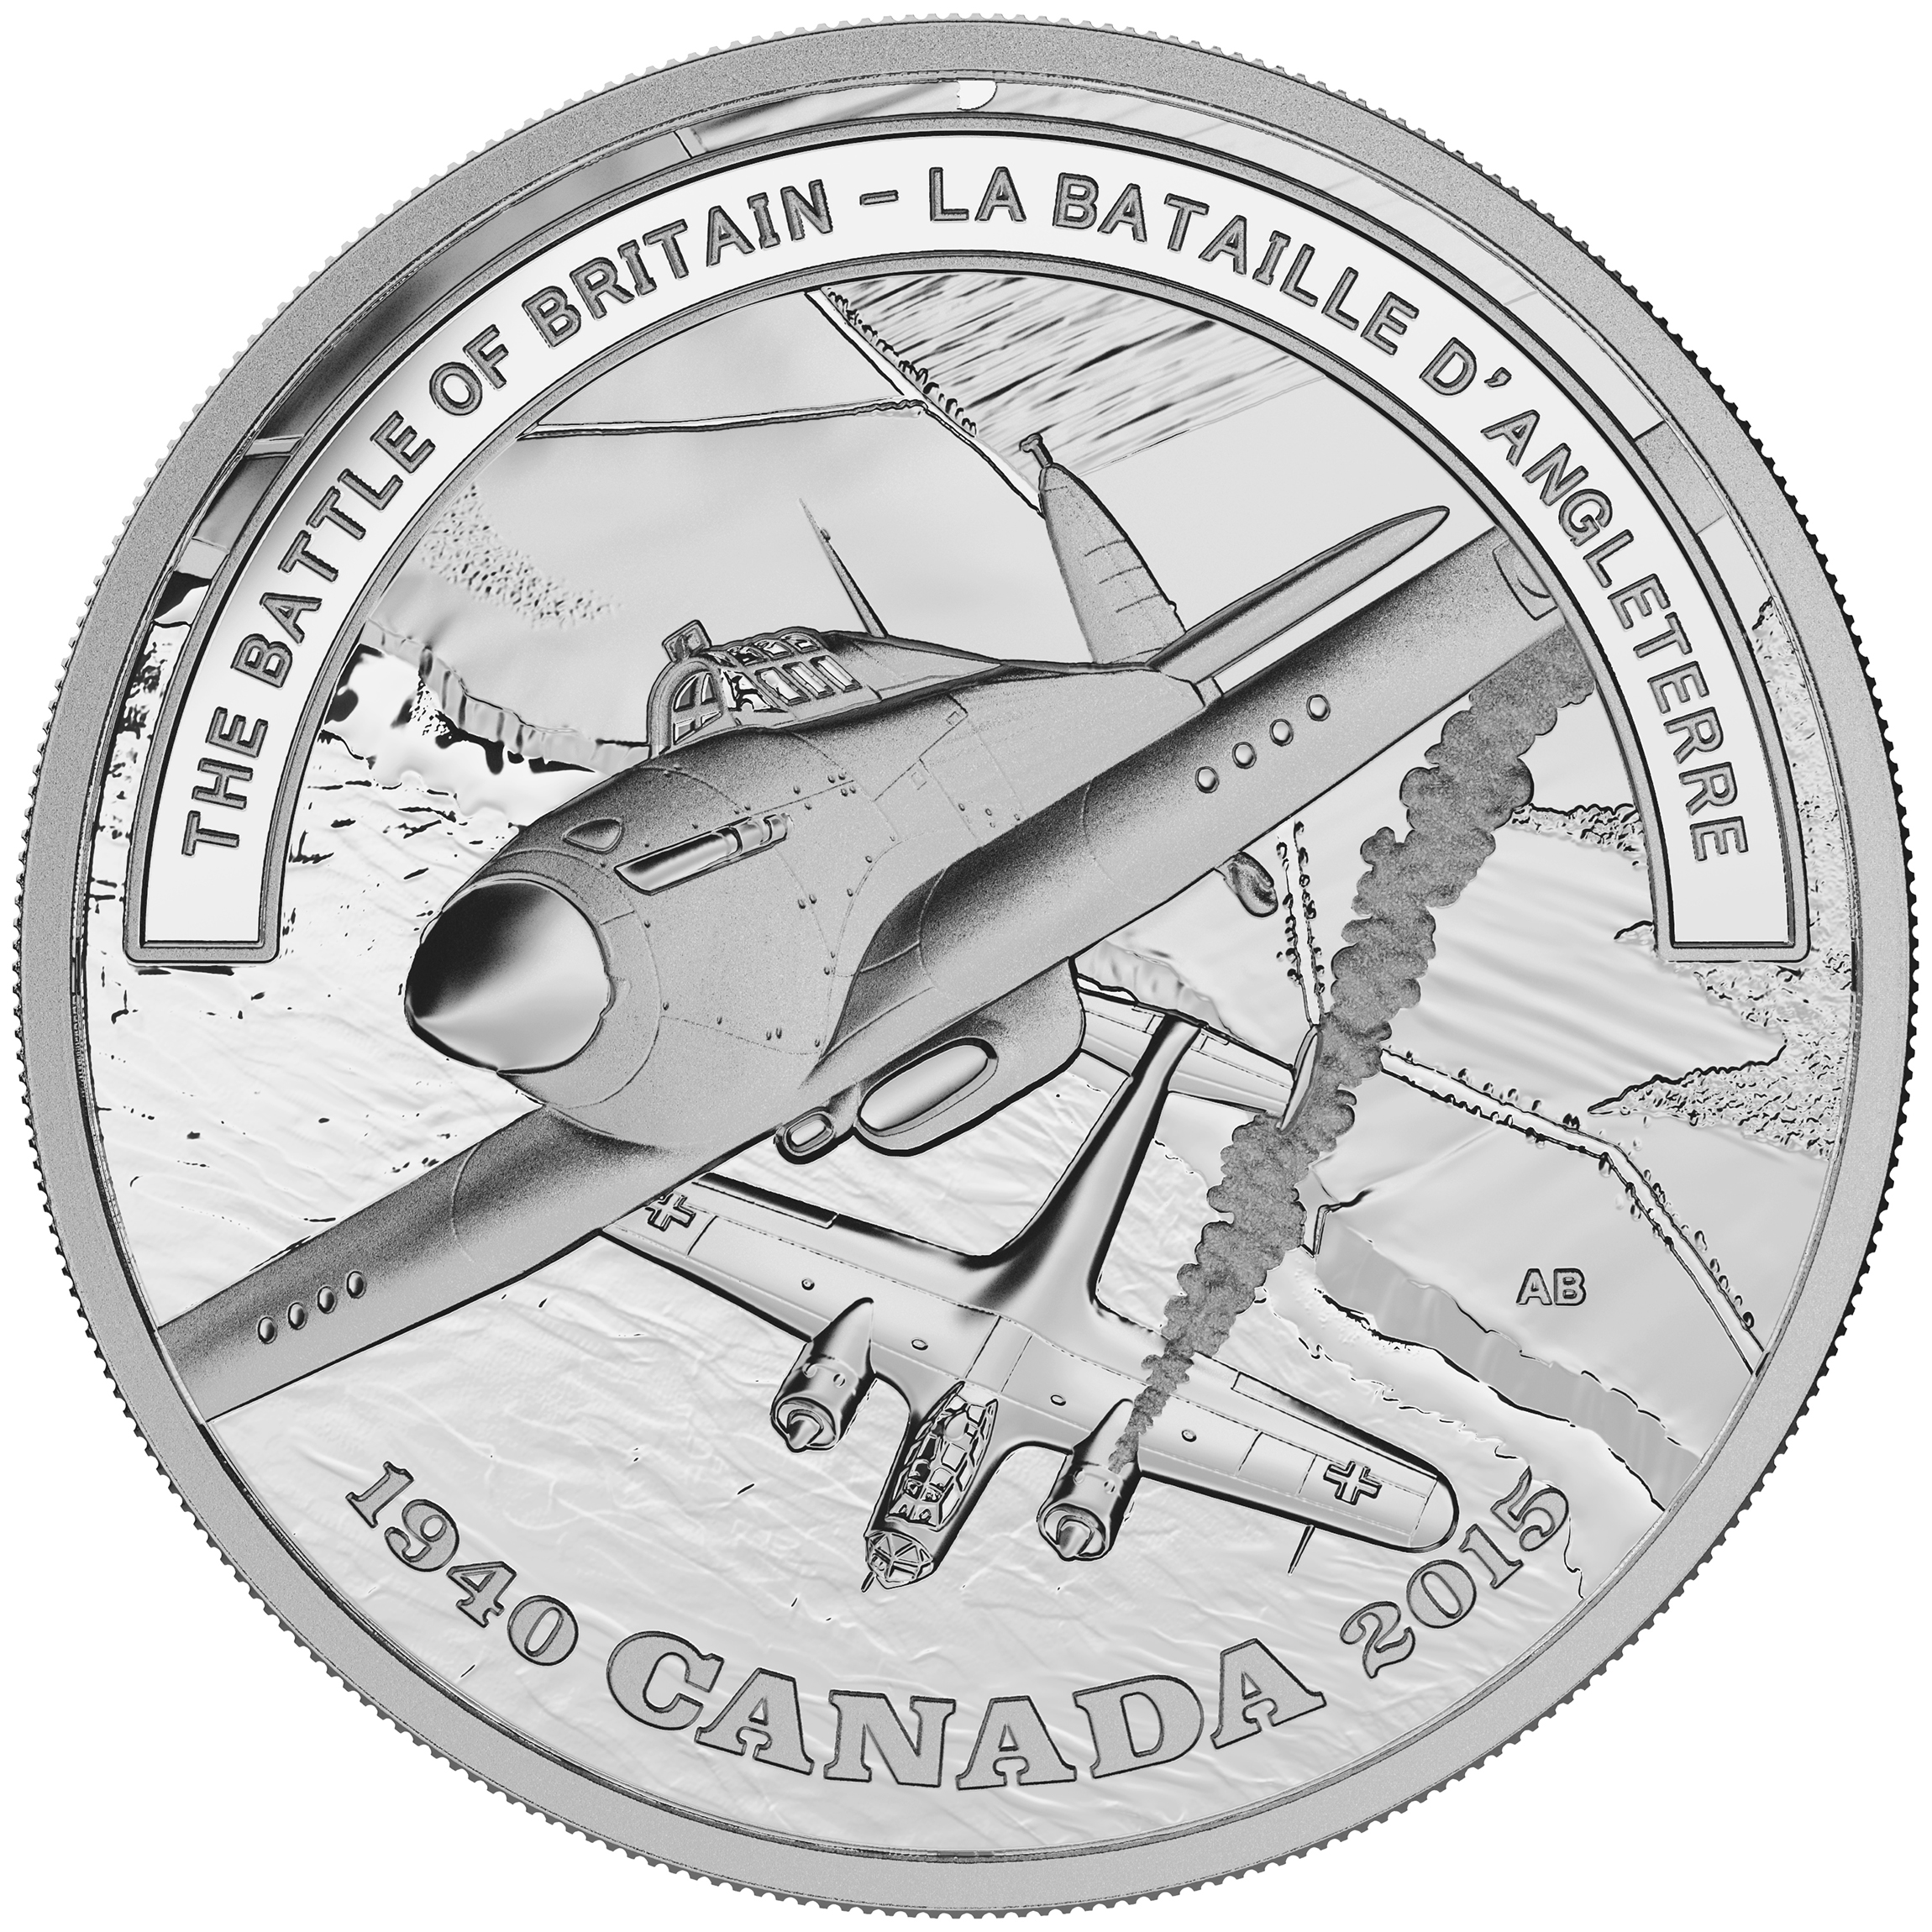 A silver coin depicting a Canadian aviator's action in the Battle of Britain has been chosen by the Royal Canadian Mint to launch its Second World War Battlefront Series of coins.